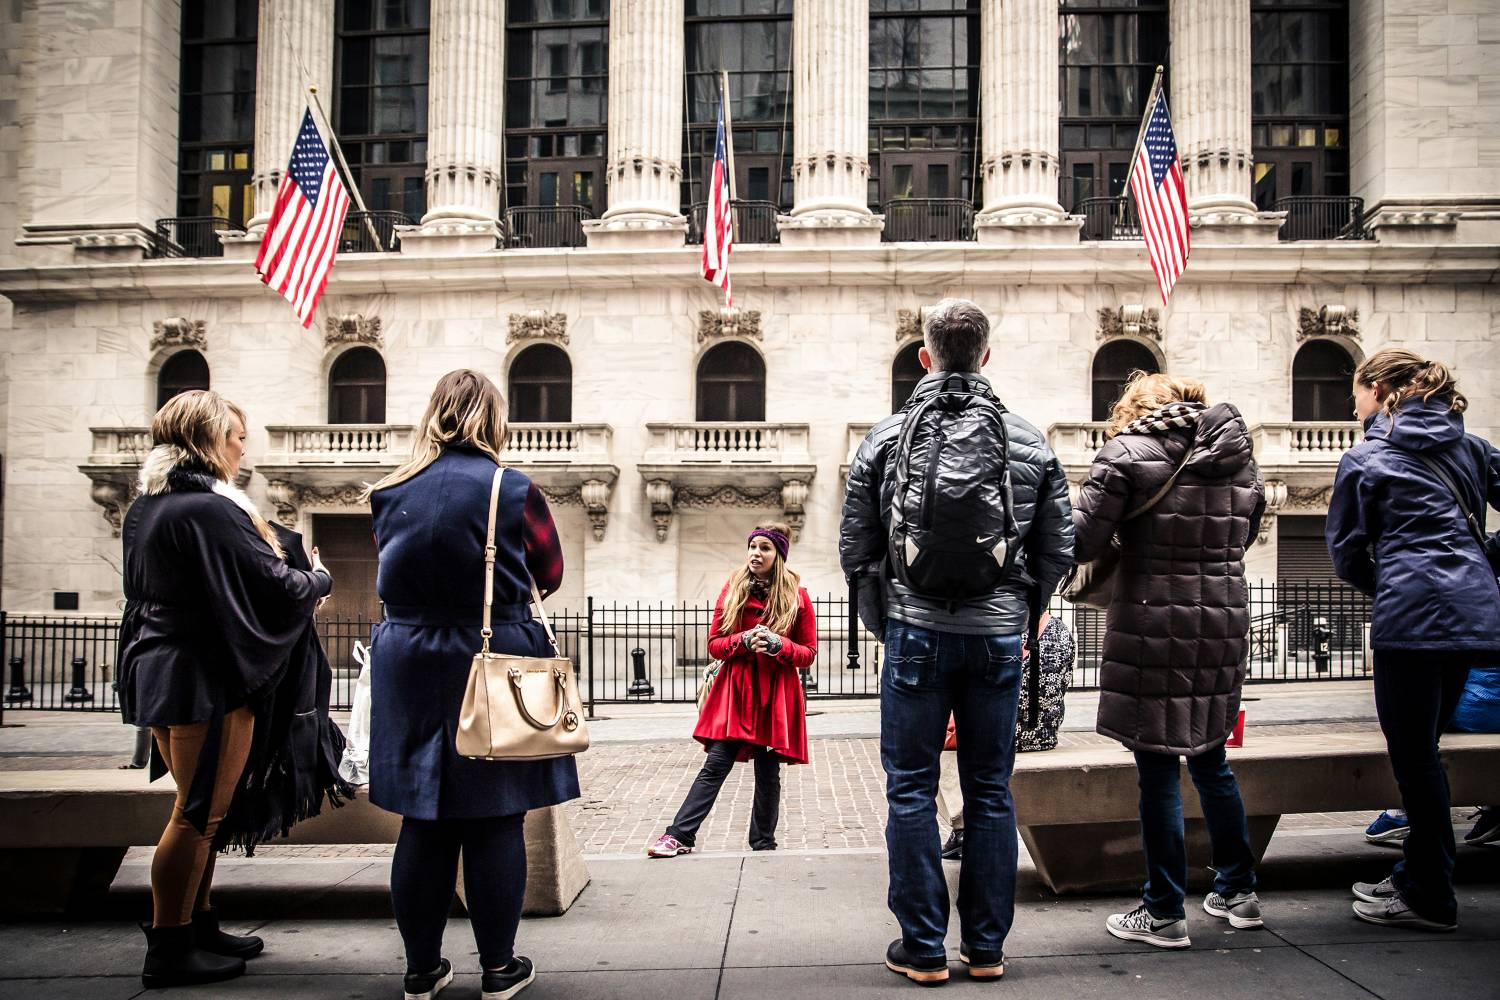 the wall street experience: new york city walking tour